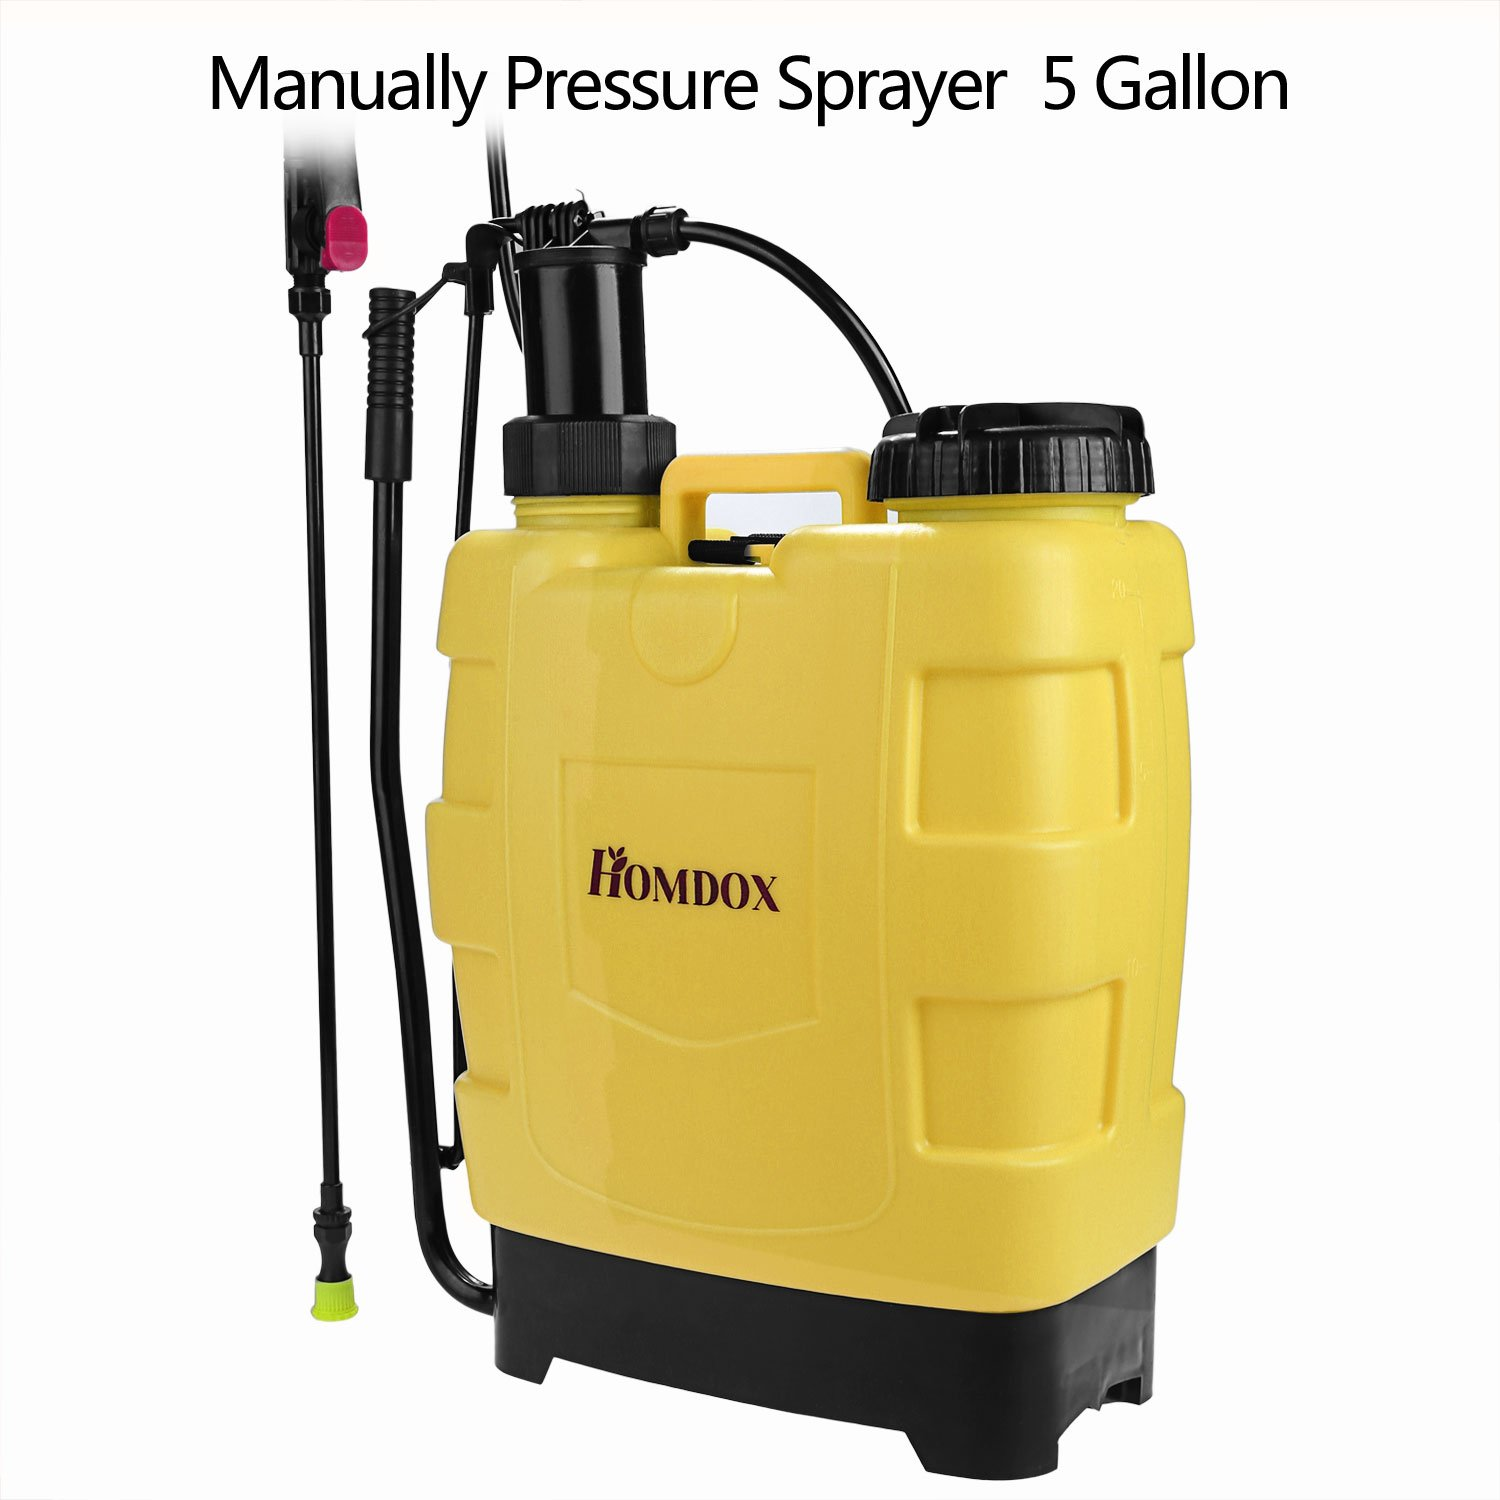 Homdox Sprayer Backpack Sprayer Lawn Garden Farm Sprayers Pump Sprayer Garden Lawn with Steel Wand and 3 Different Nozzles (20 L, Yellow)